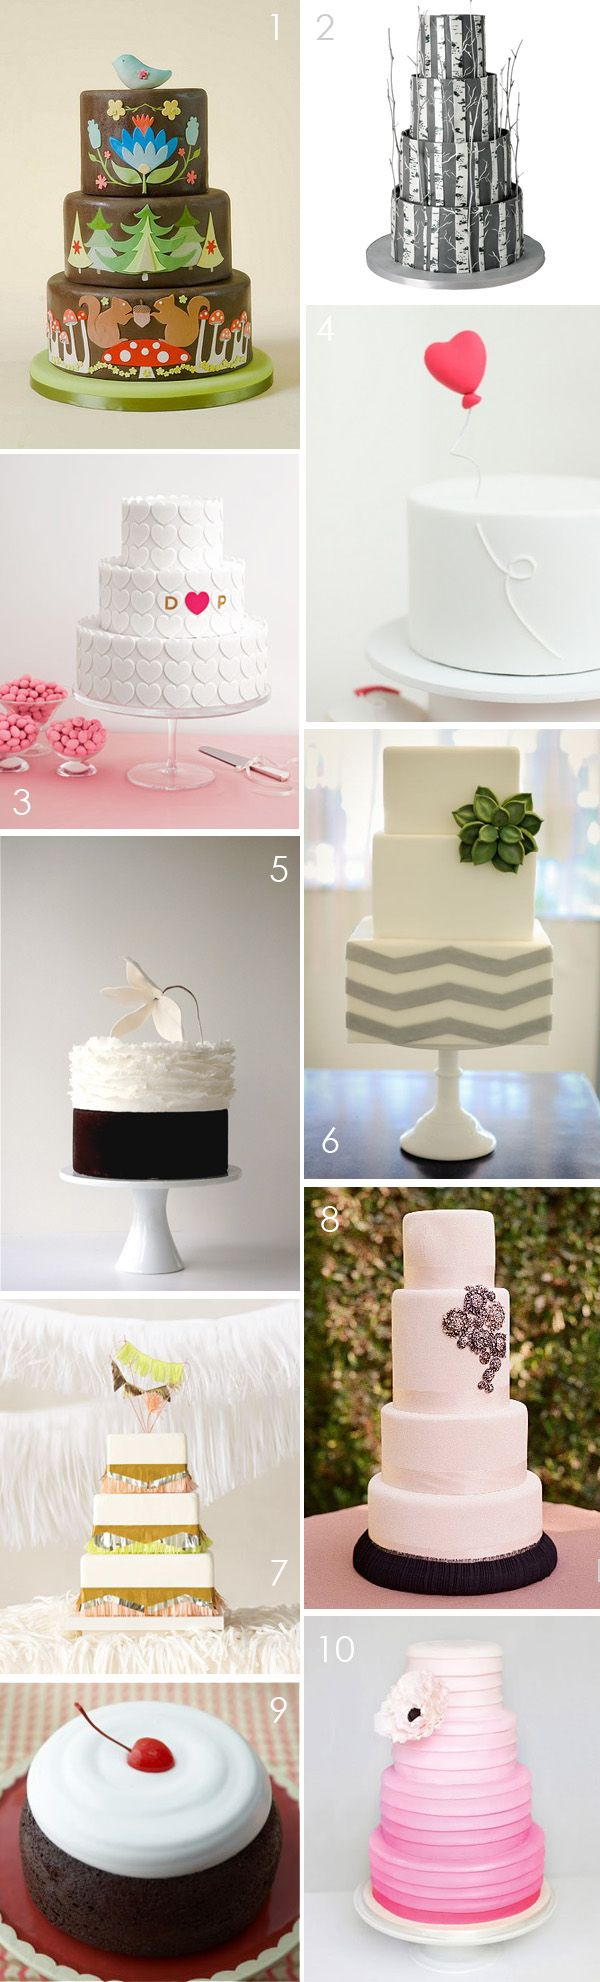 Modern wedding cakes love the simple one with the heart balloon